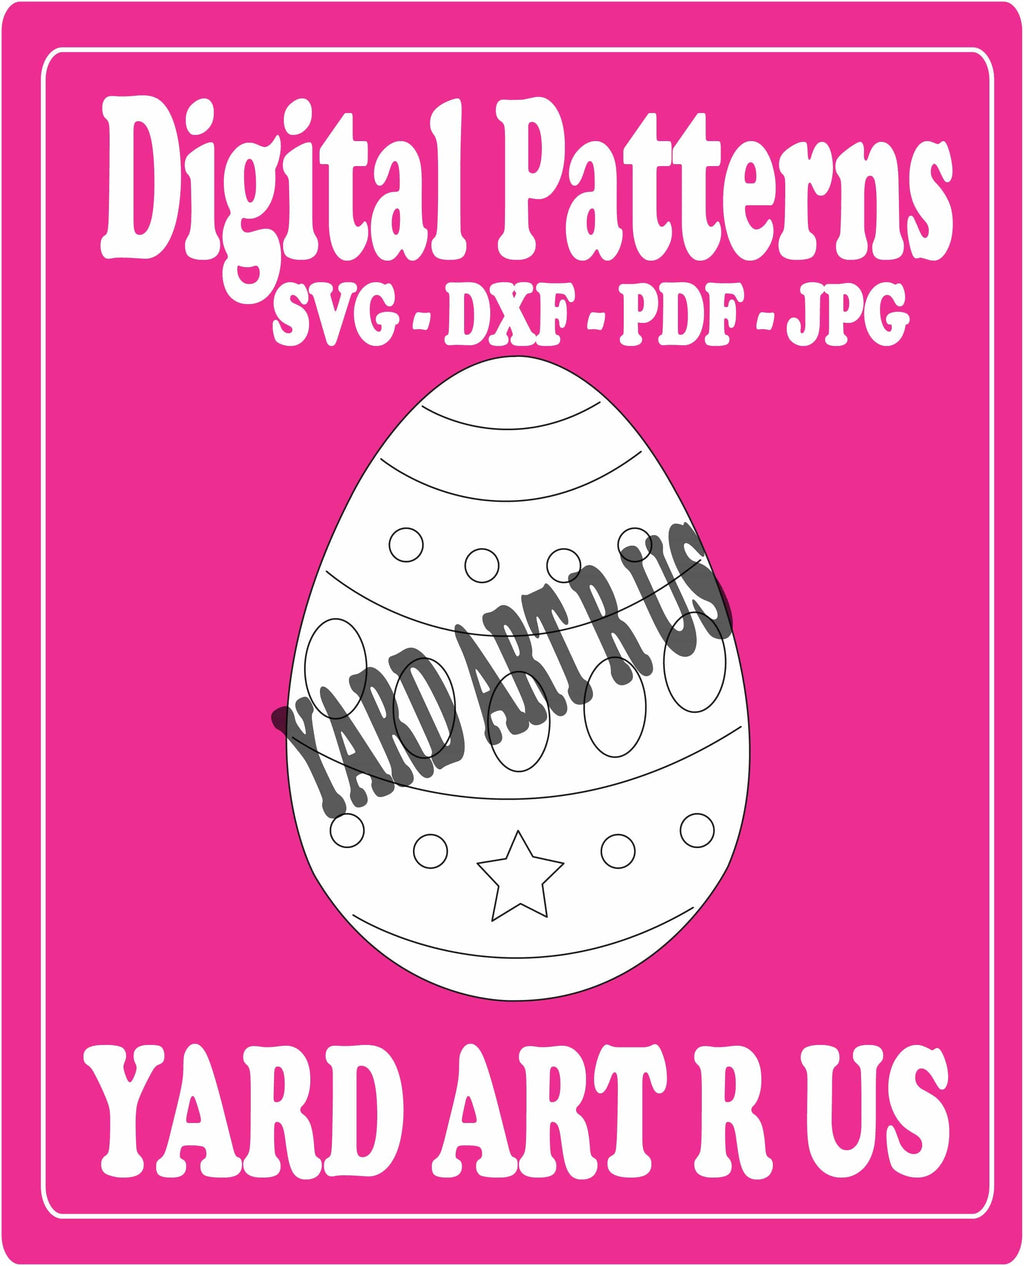 esdter egg with circles, ovals, and a star digital pattern - SVG, DXF, PDF, and JPG file options